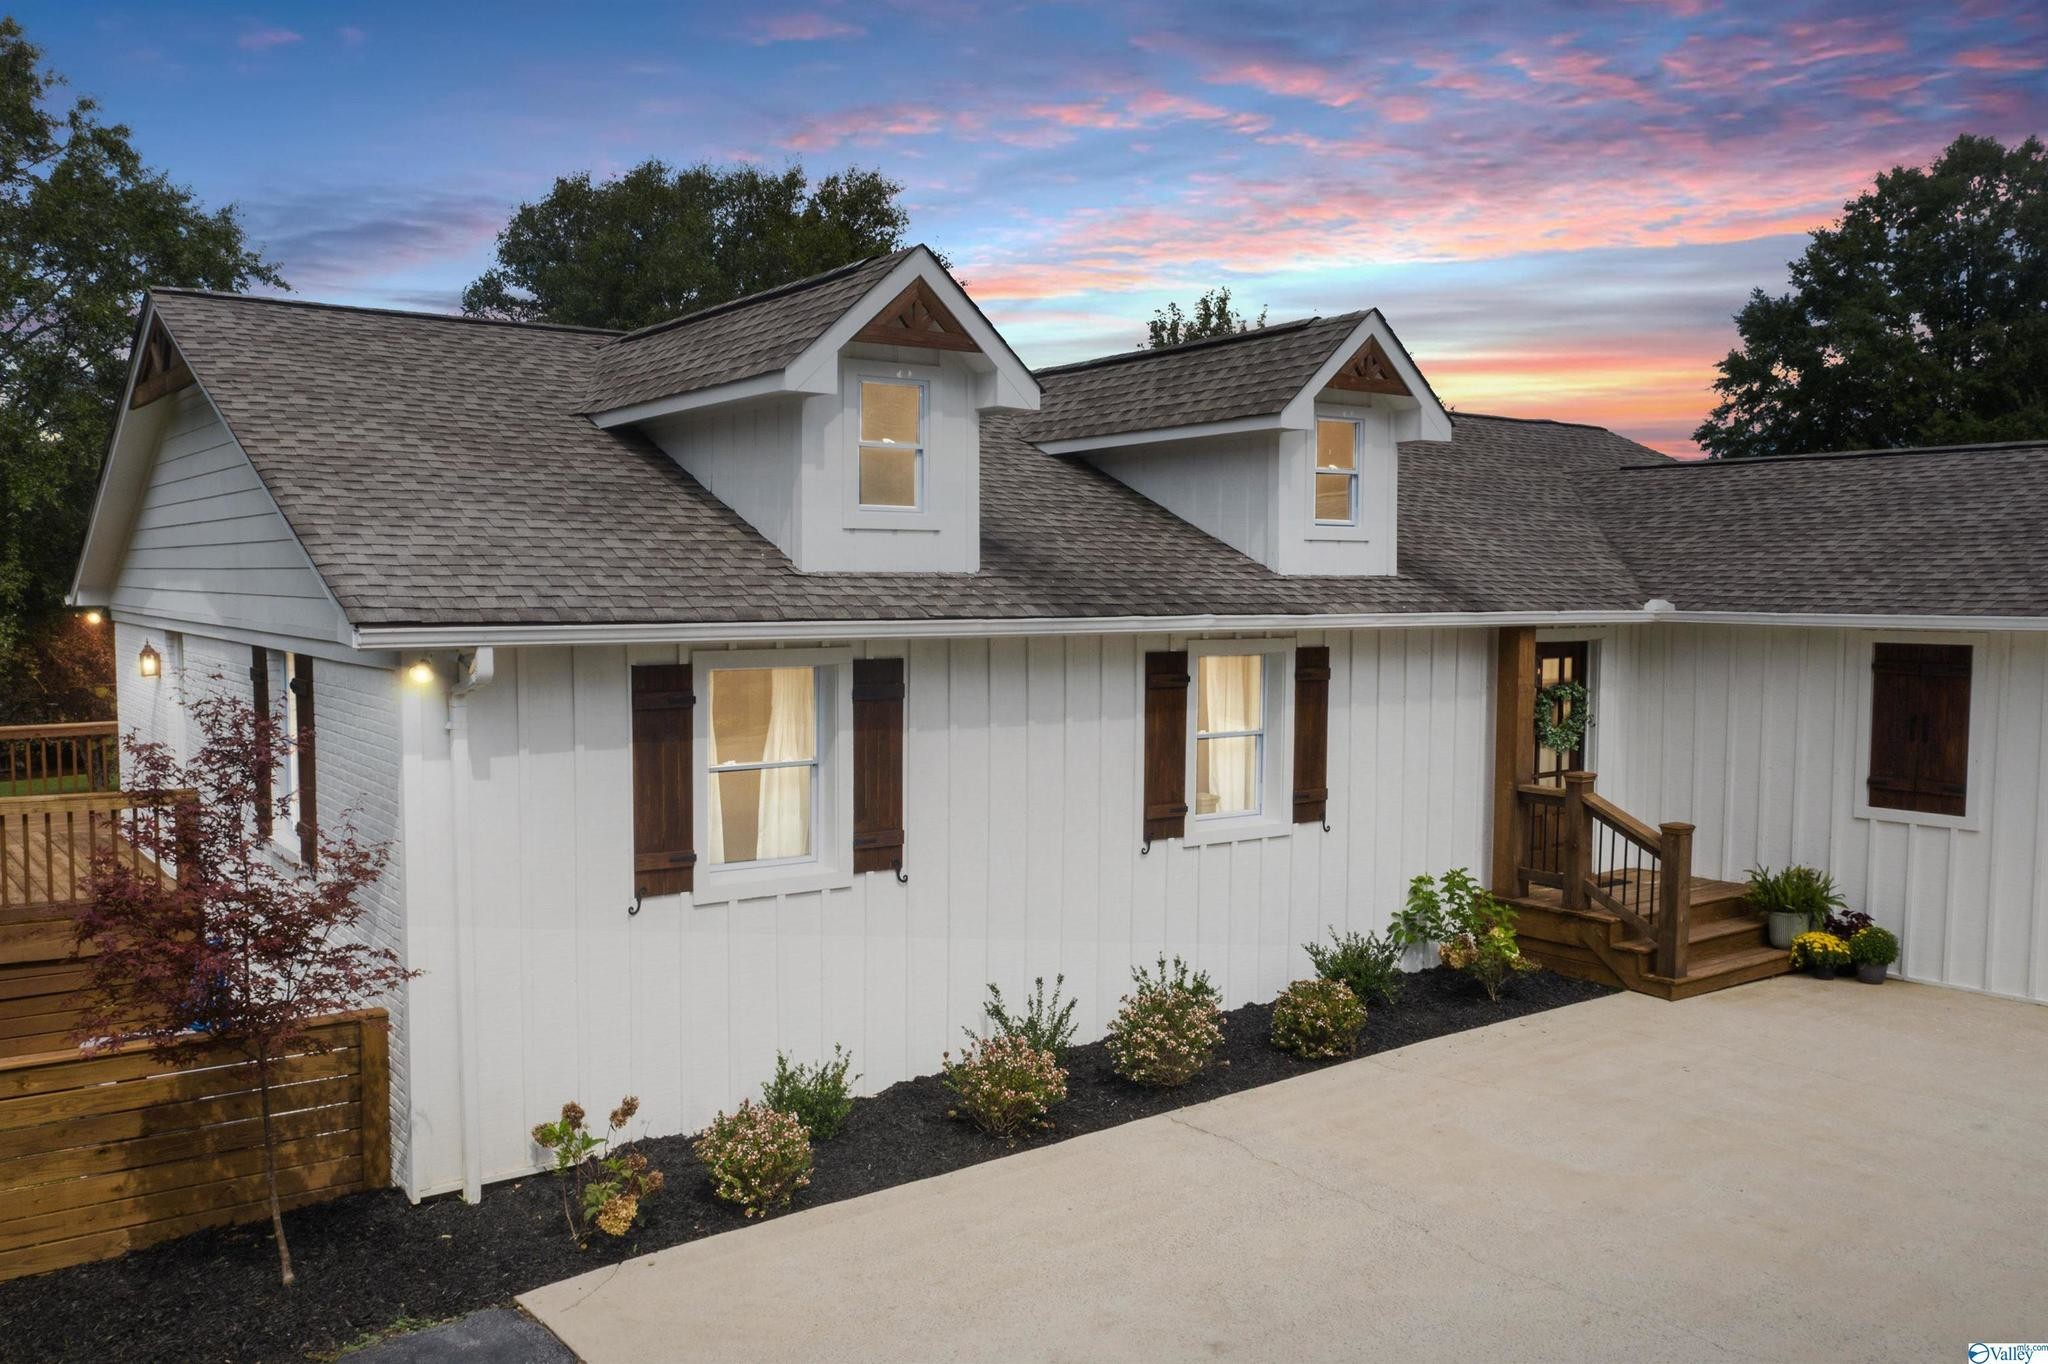 Renovated 4-Bedroom House In Vinemont